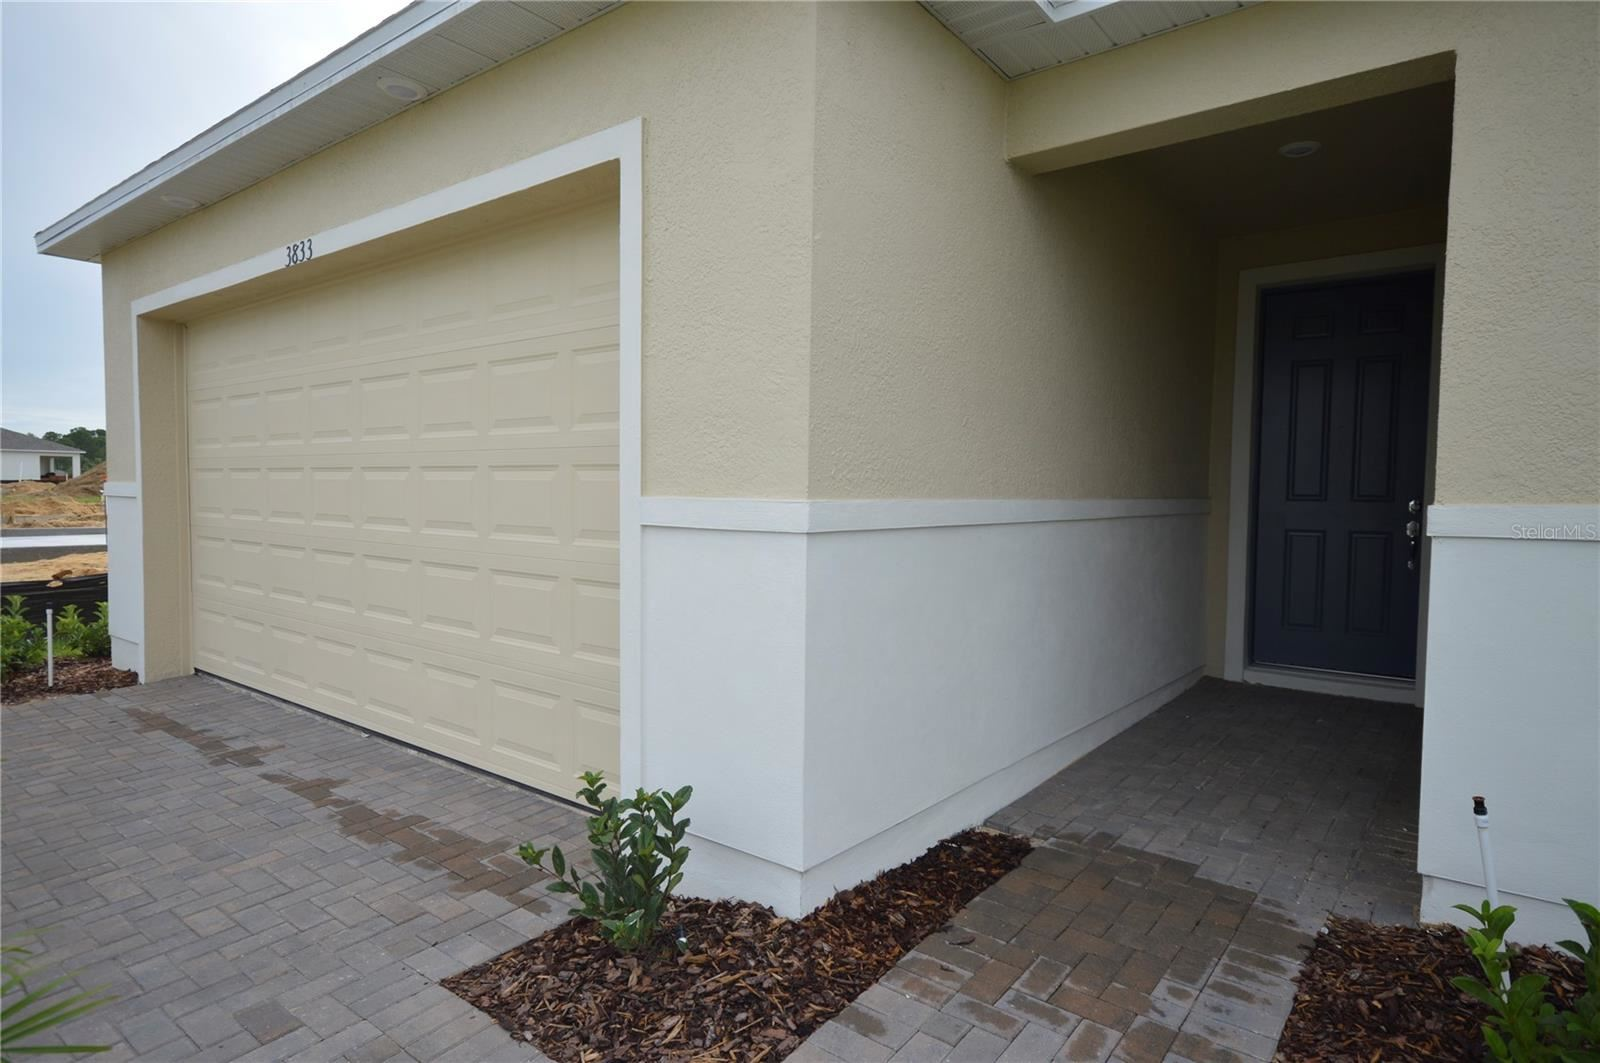 Photo of 3833 FESCUE STREET, CLERMONT, FL 34714 (MLS # T3331901)